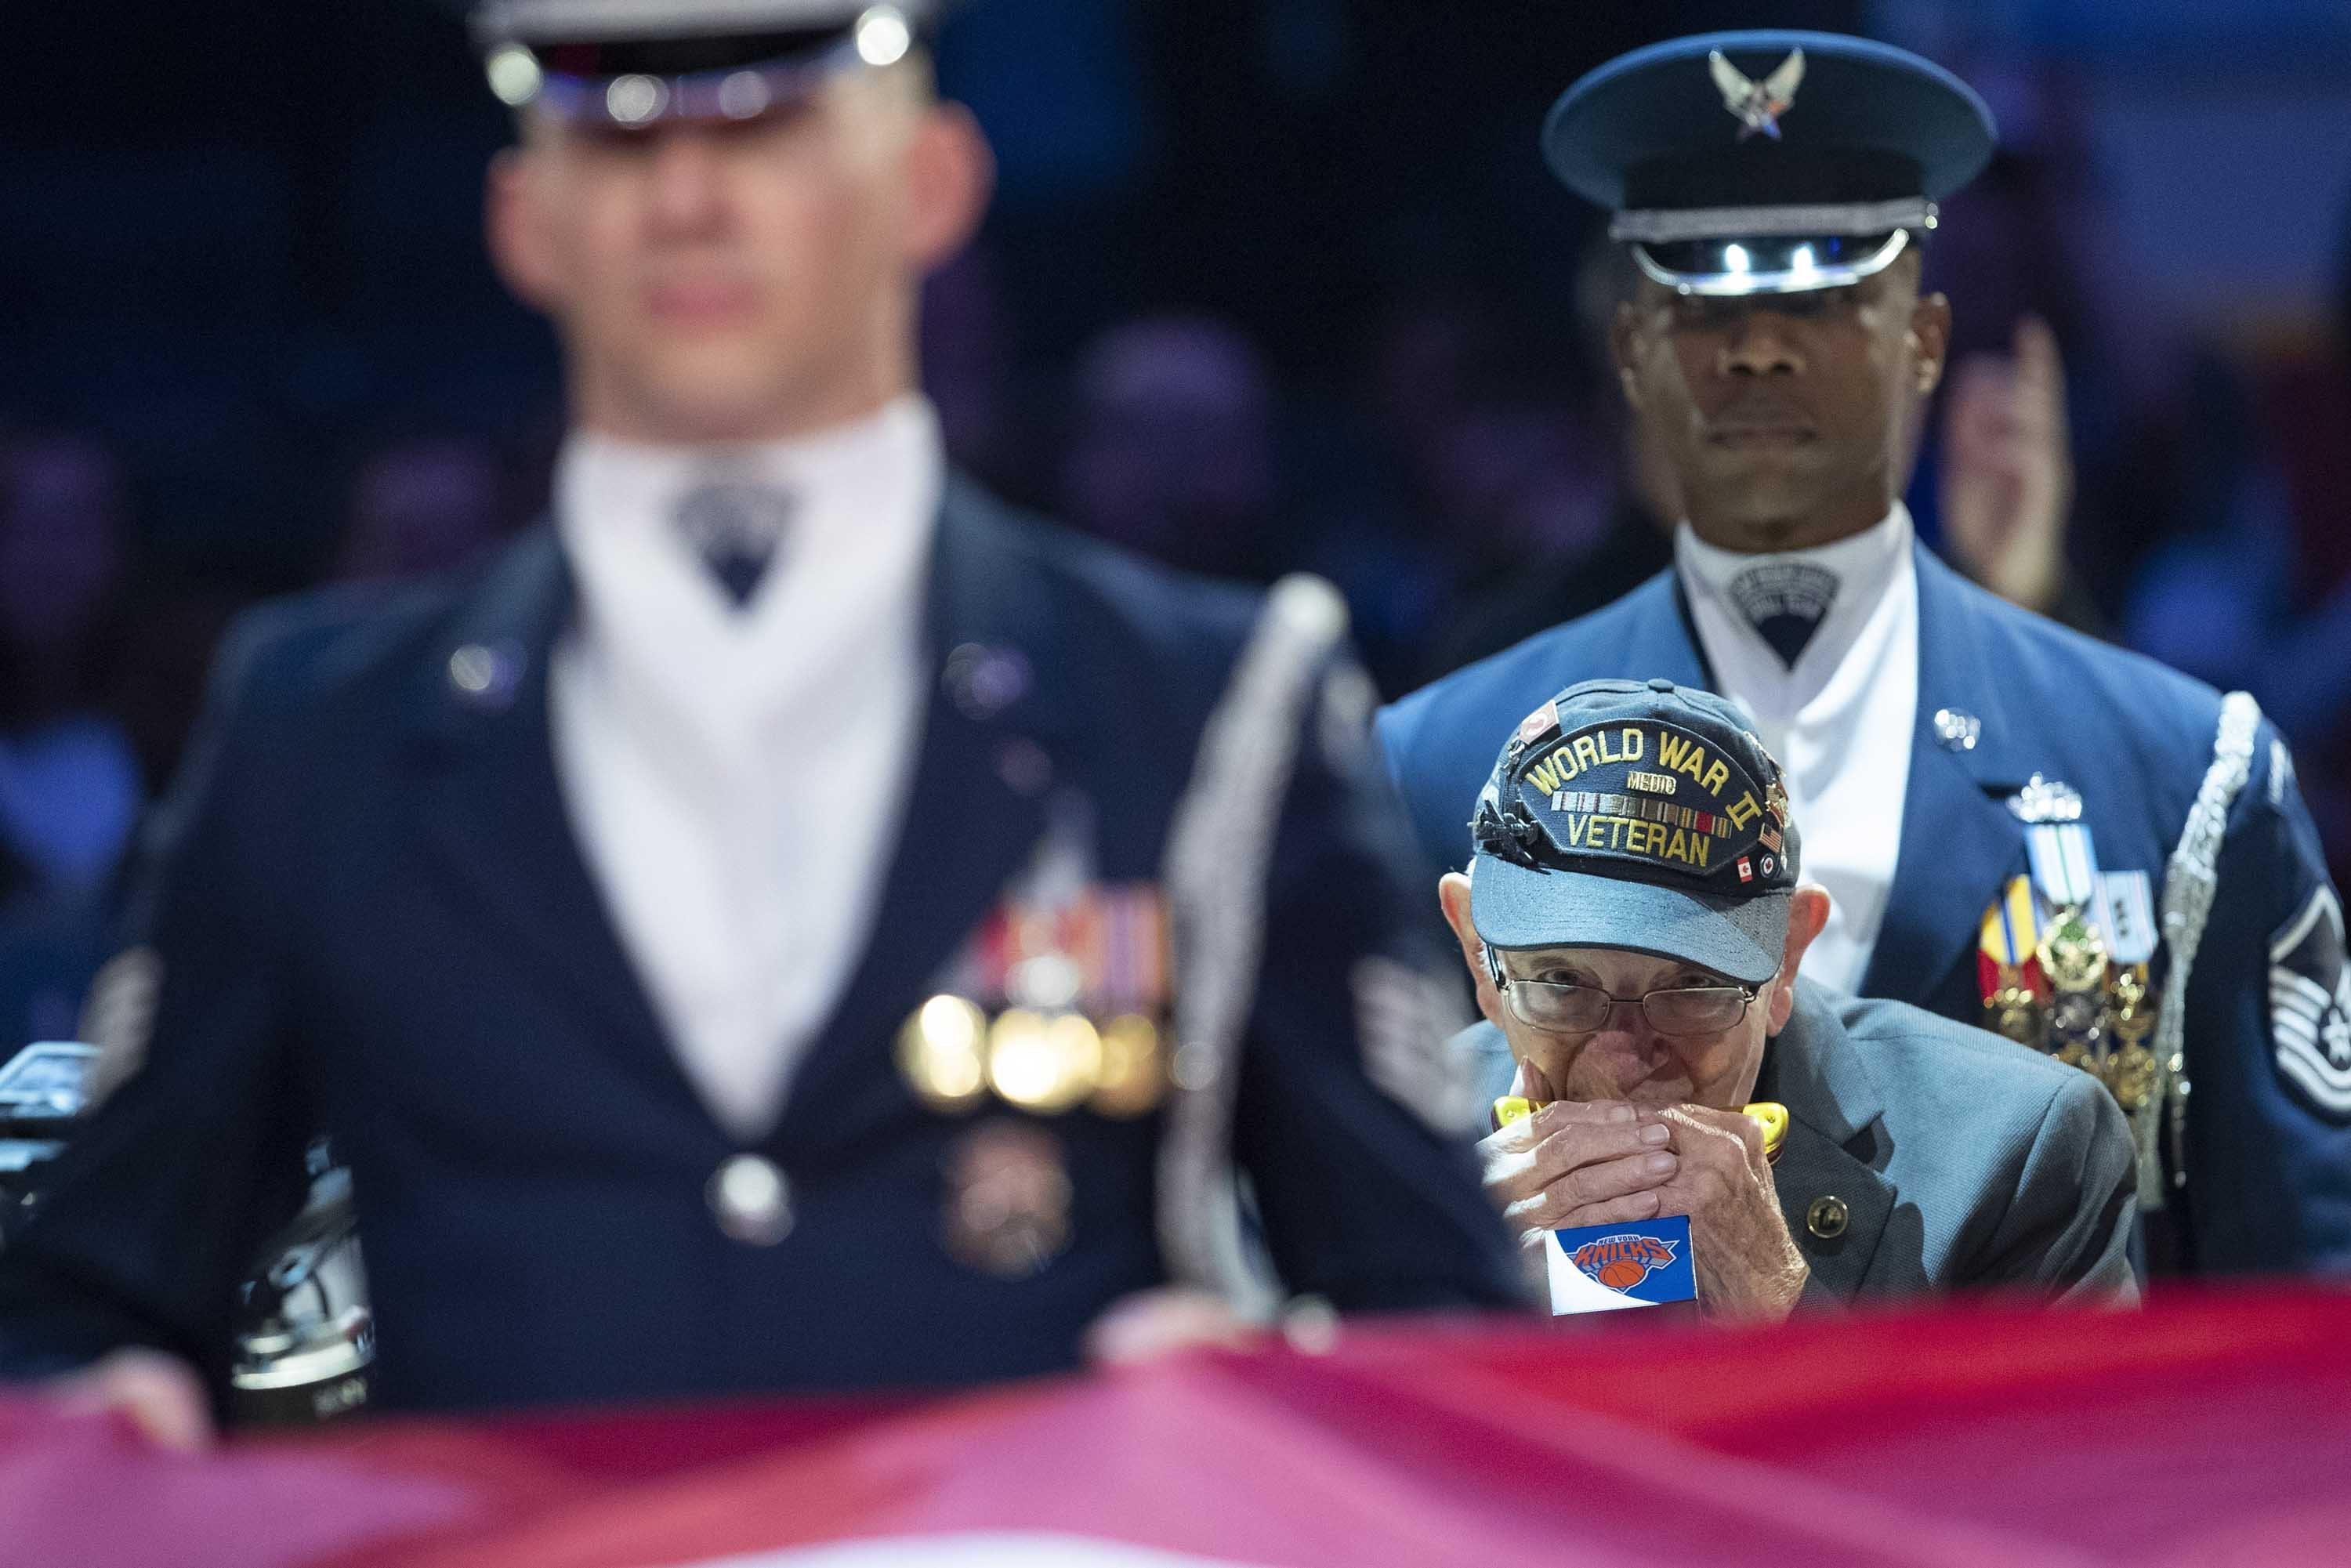 A WWII veteran wows the audience at an NBA game with his harmonica rendition of the National Anthem